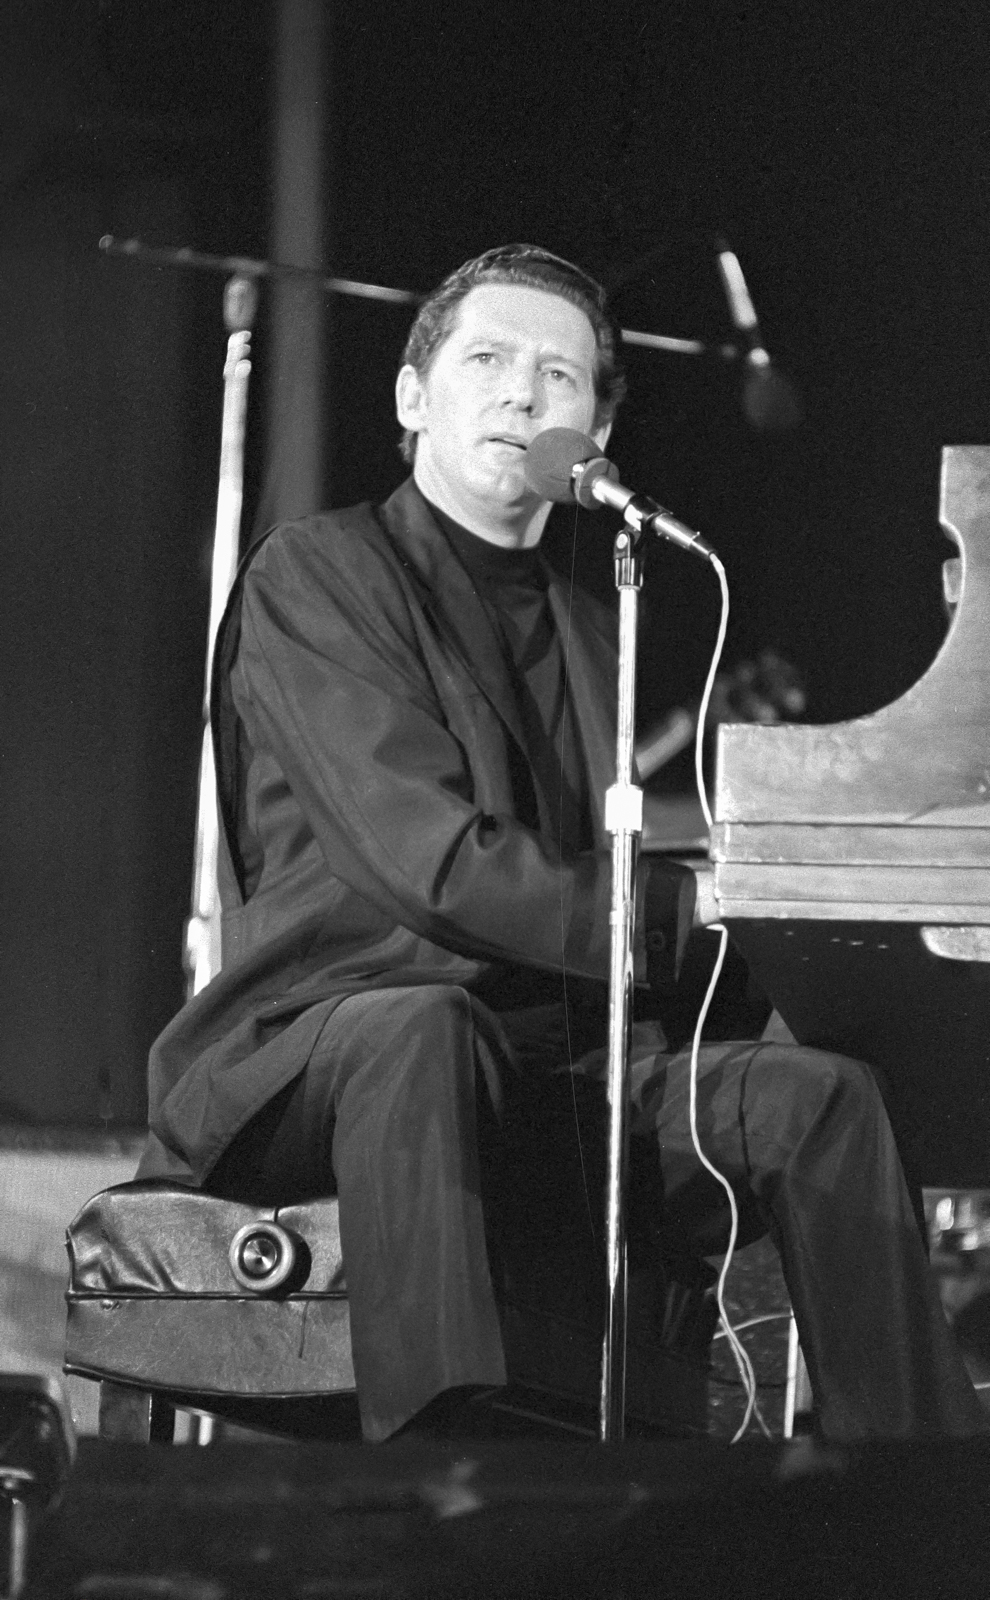 Jerry Lee Lewis 1972 12013 10 021 of 8 2